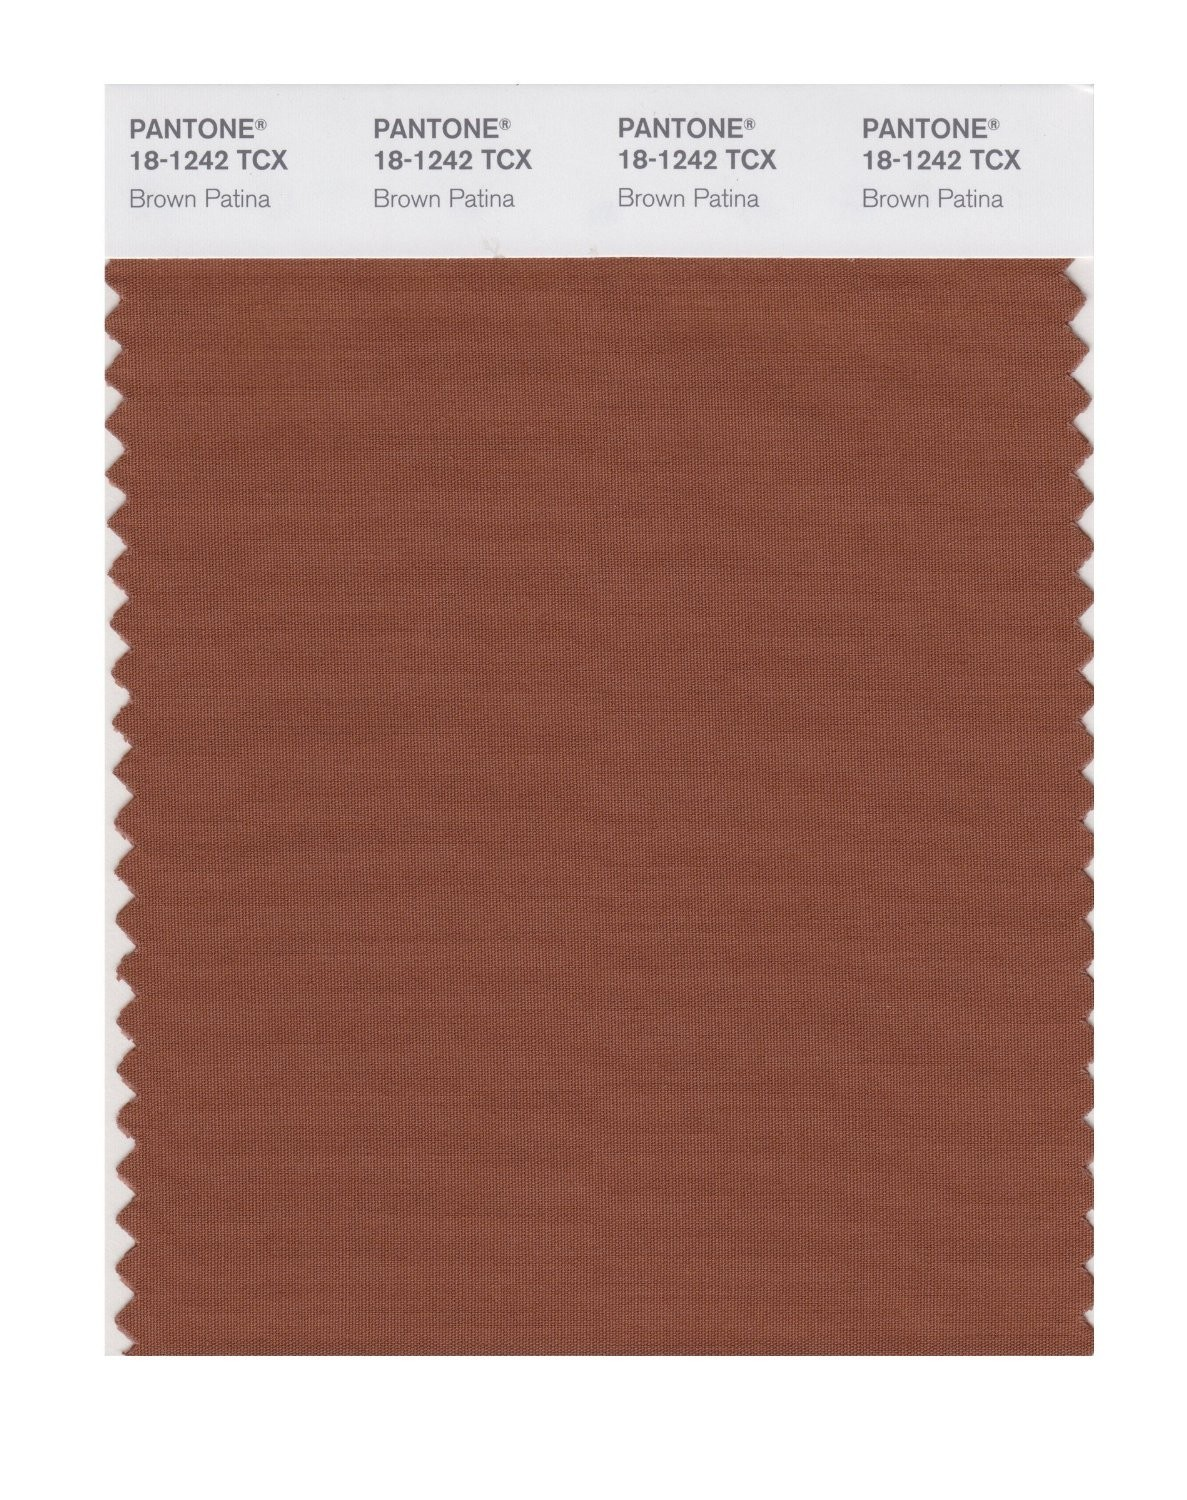 Pantone 18-1242 TCX Swatch Card Brown Patina